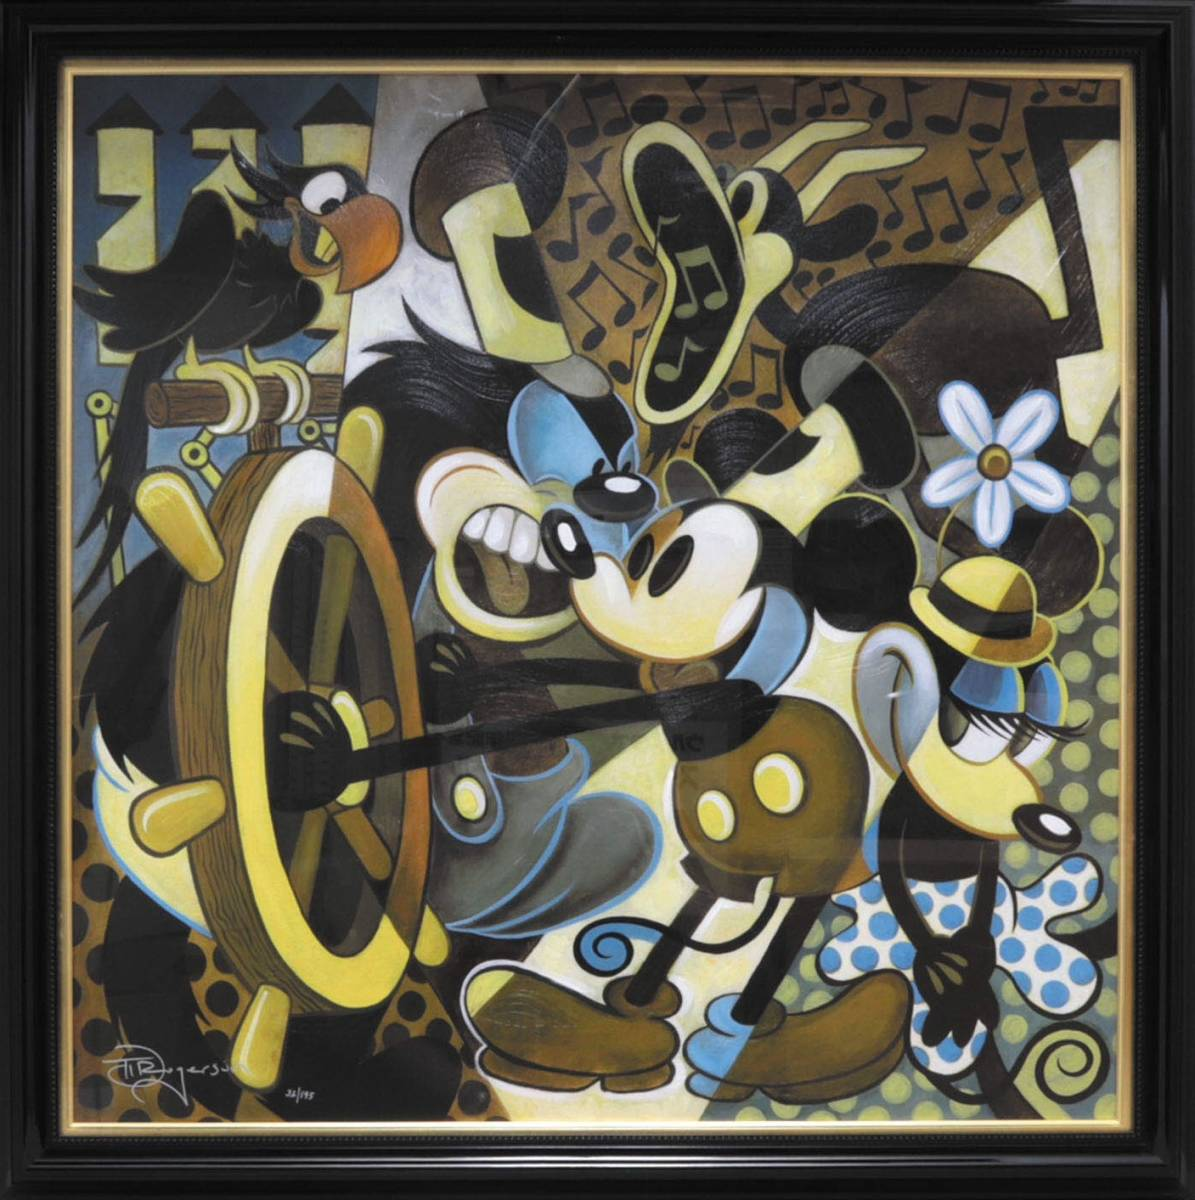 Mickey ジークレー Of Mice and Music / Tim Rogerson(検: セル画 原画 レイアウト 動画 資料 ディズニー ミッキーマウス Mickey Mouse )